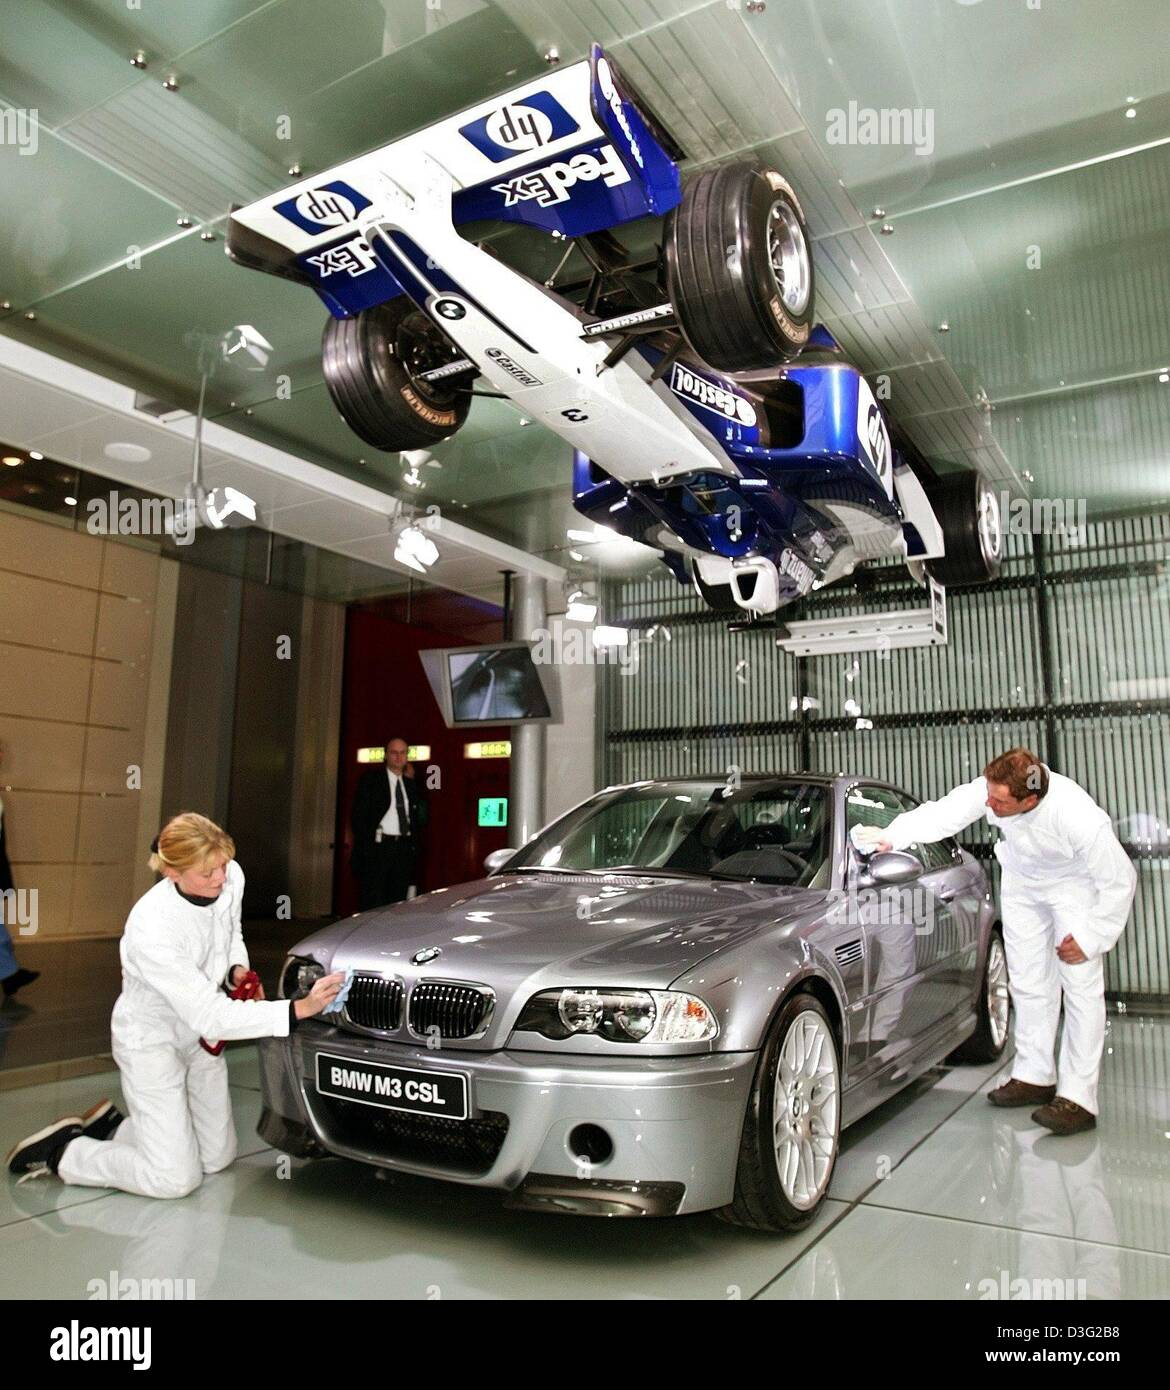 (dpa)   Employees Of BMW Car Manufacturer Wax And Polish BMWu0027s New Model  U0027M3 CSLu0027 And From The Ceiling Hangs A Formula One Racing Car With A BMW  Engine In ...